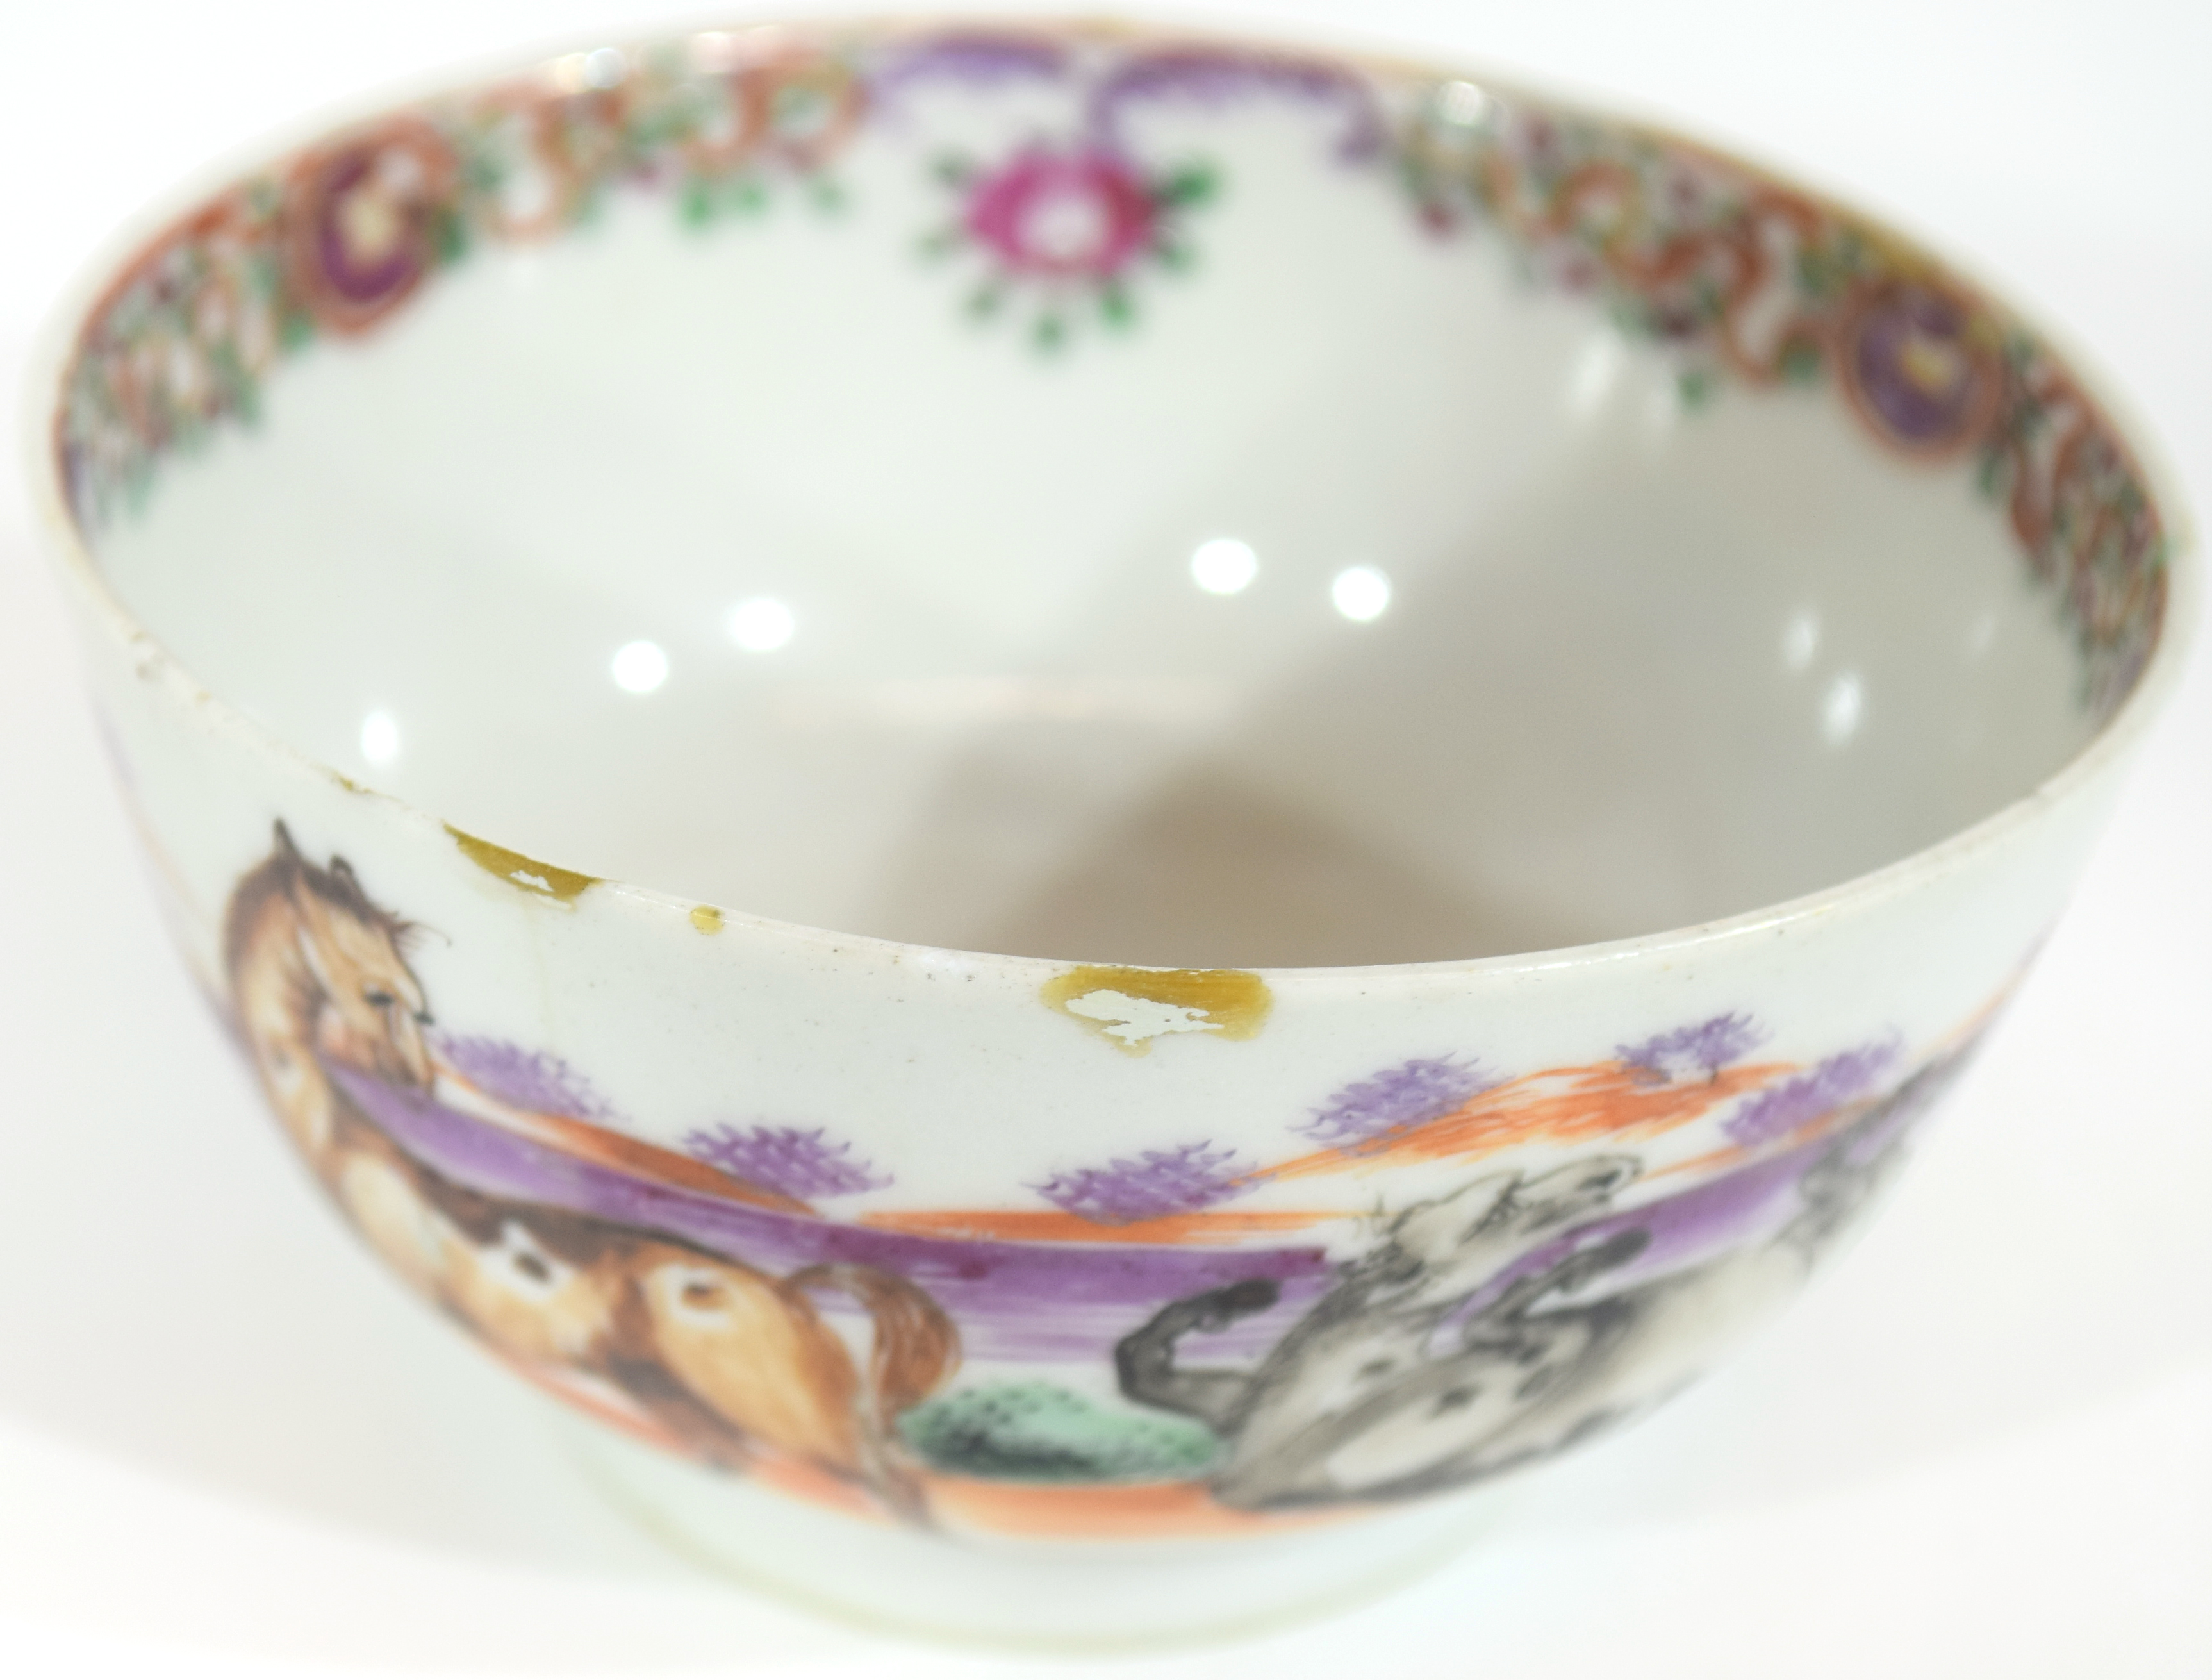 Small Chinese bowl, 18th century - Image 11 of 13